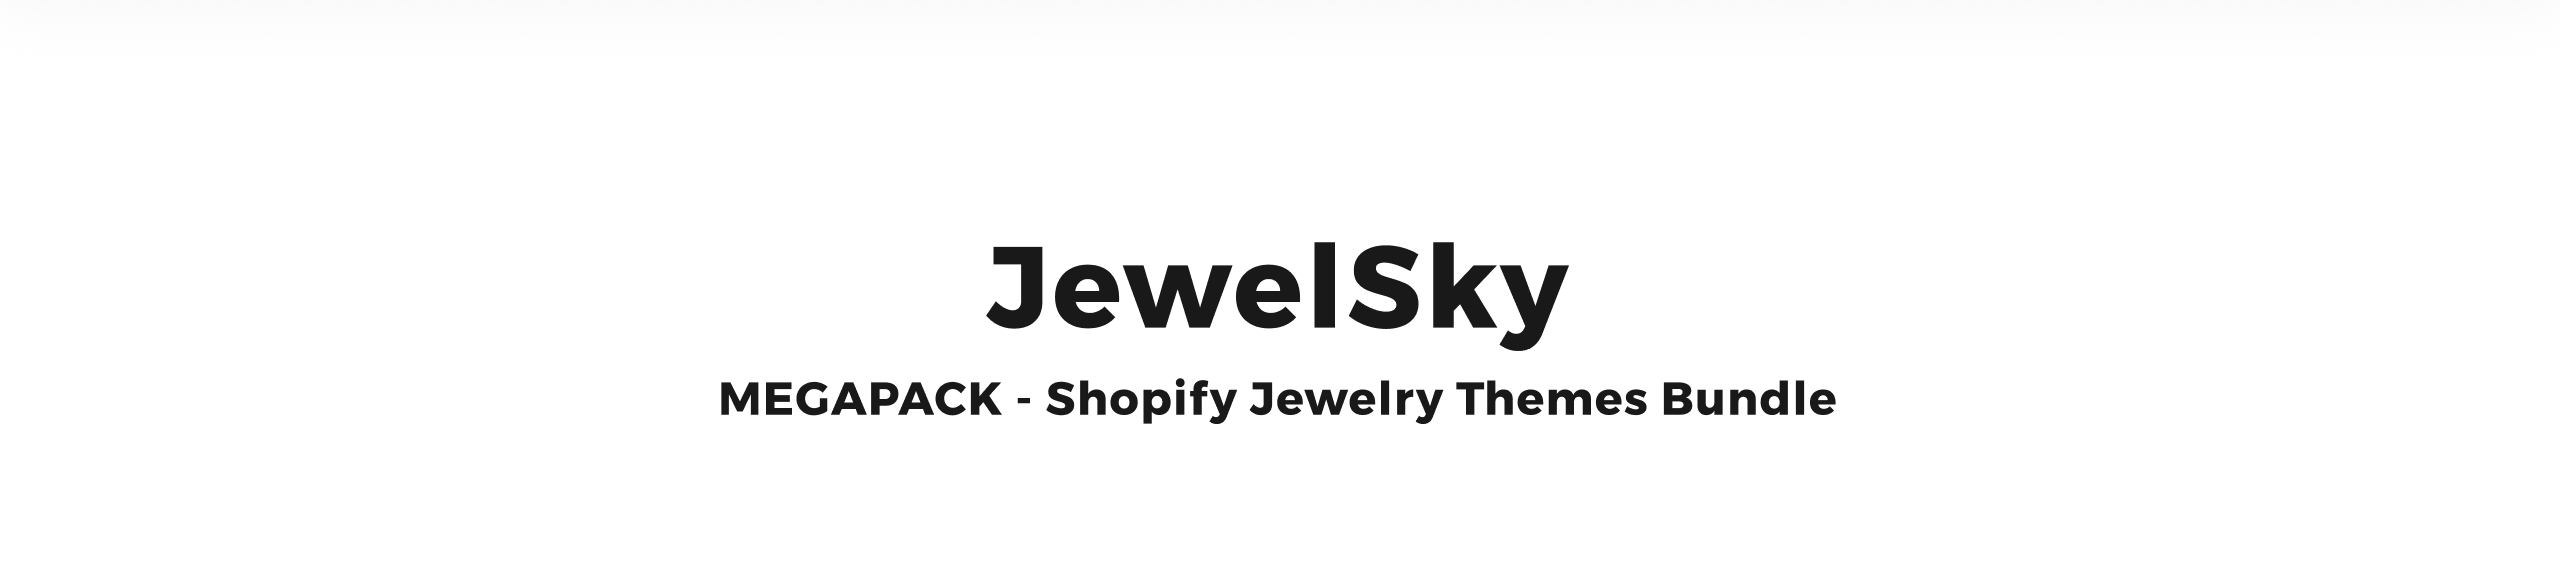 Jewelry Bundle Shopify Theme